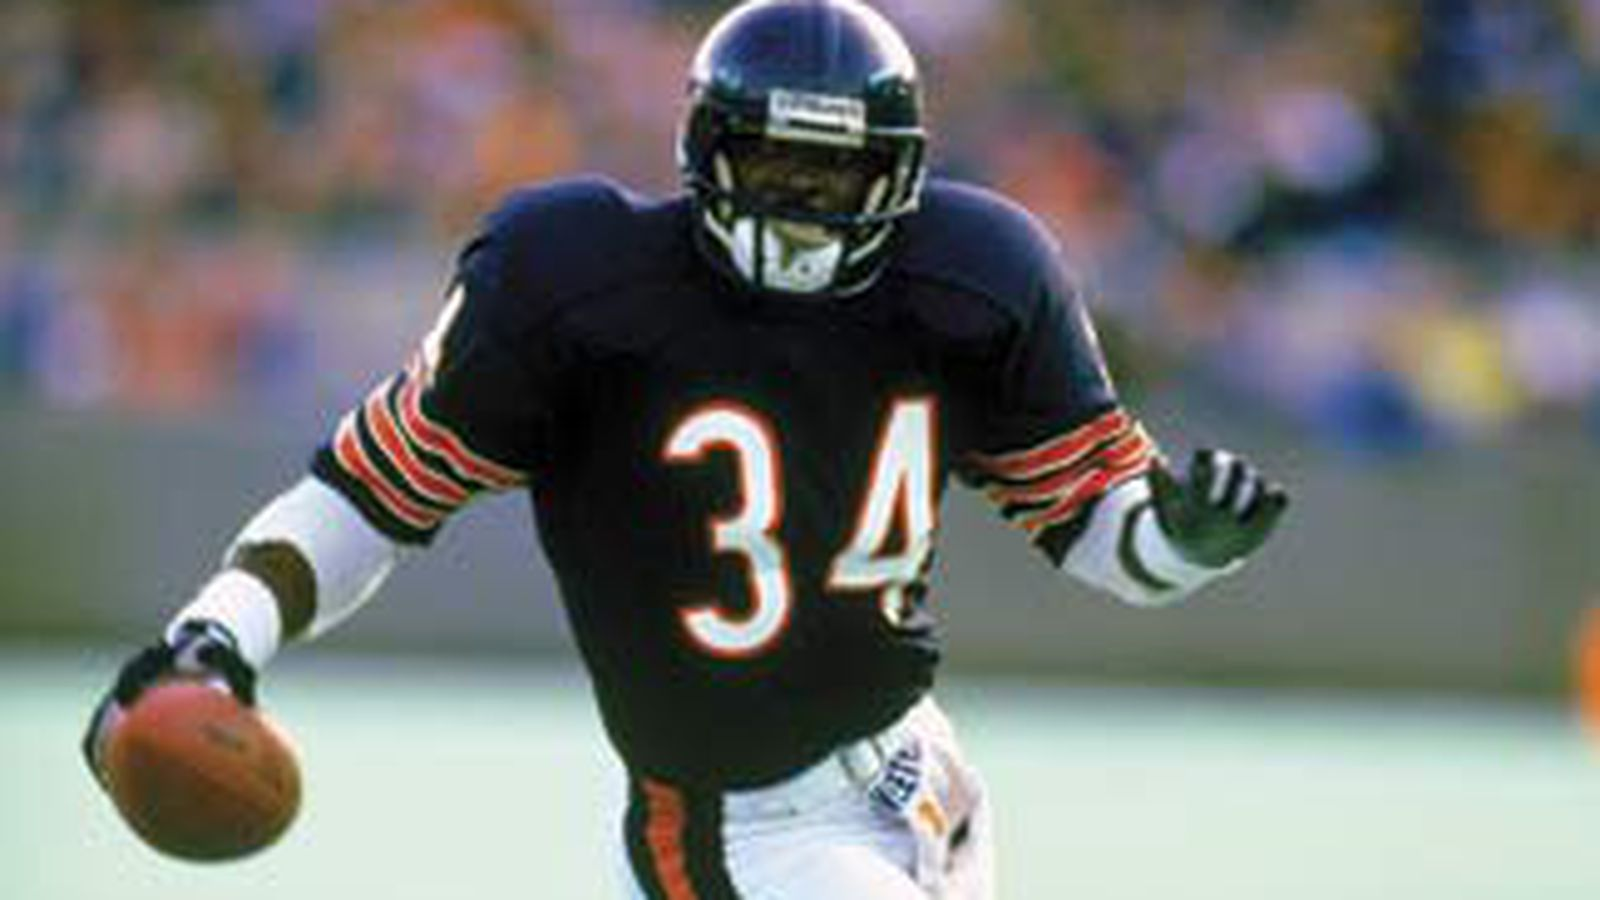 Who is the first player you think of when you think of the Bears?